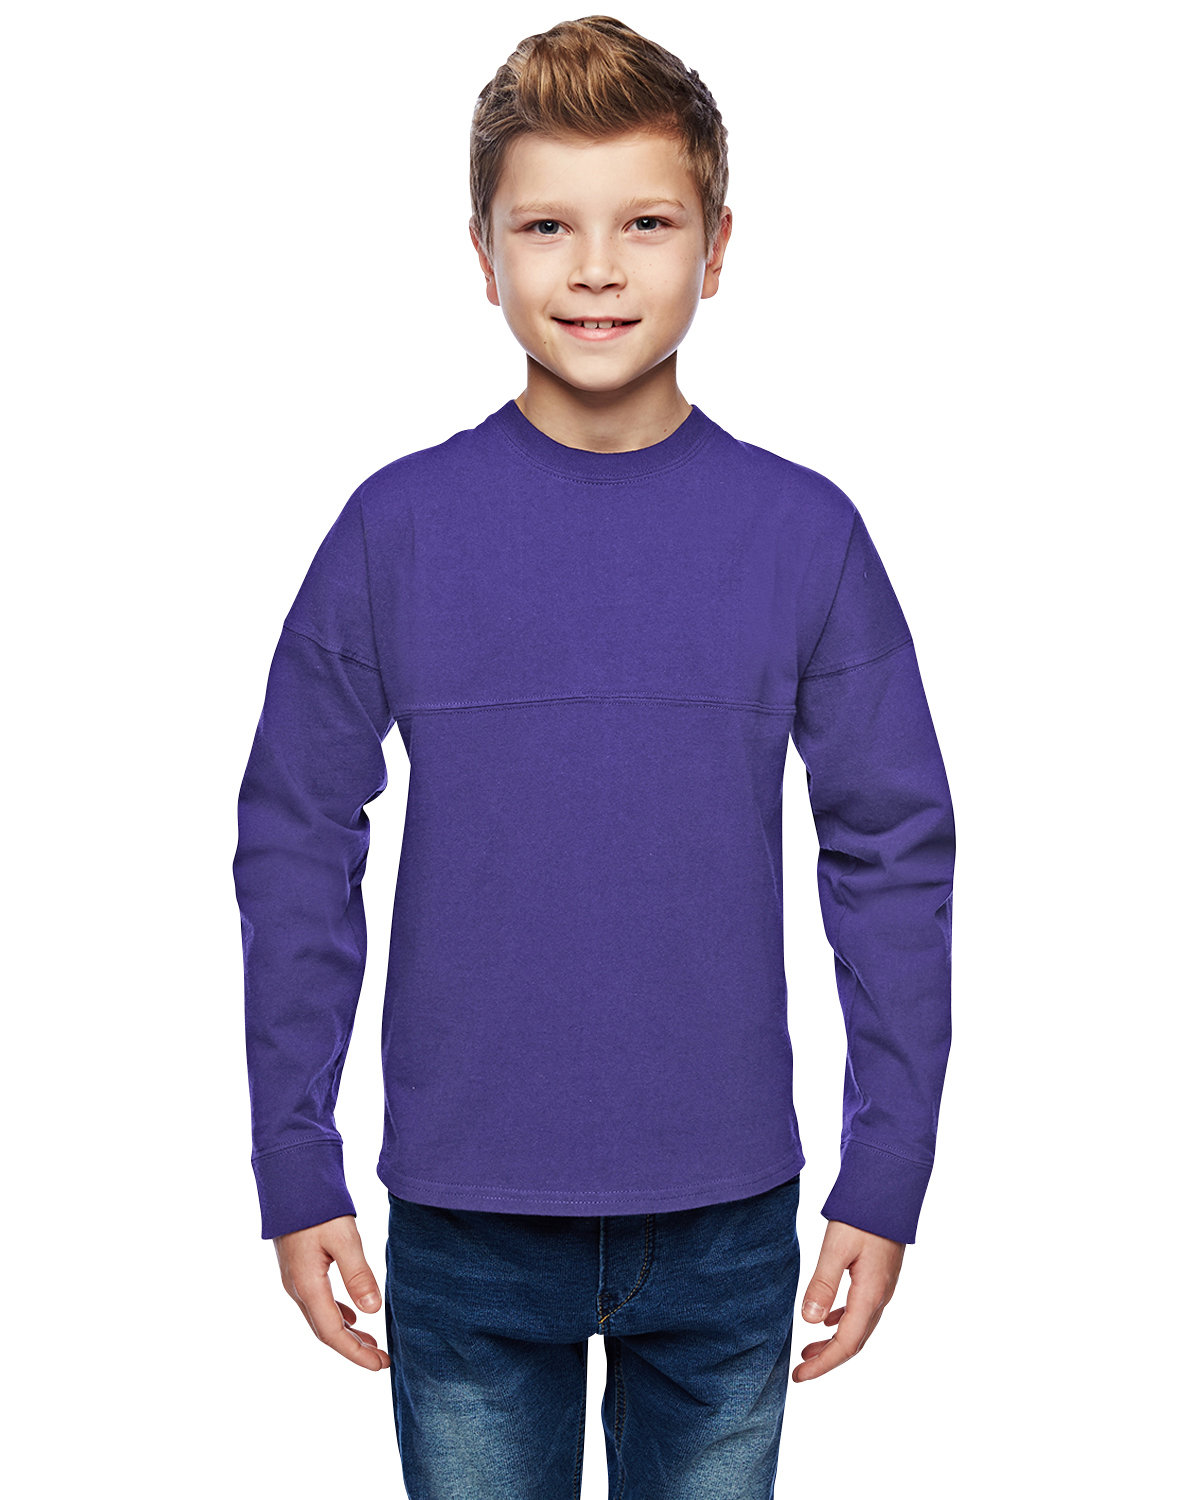 J America Youth Game Day Jersey PURPLE